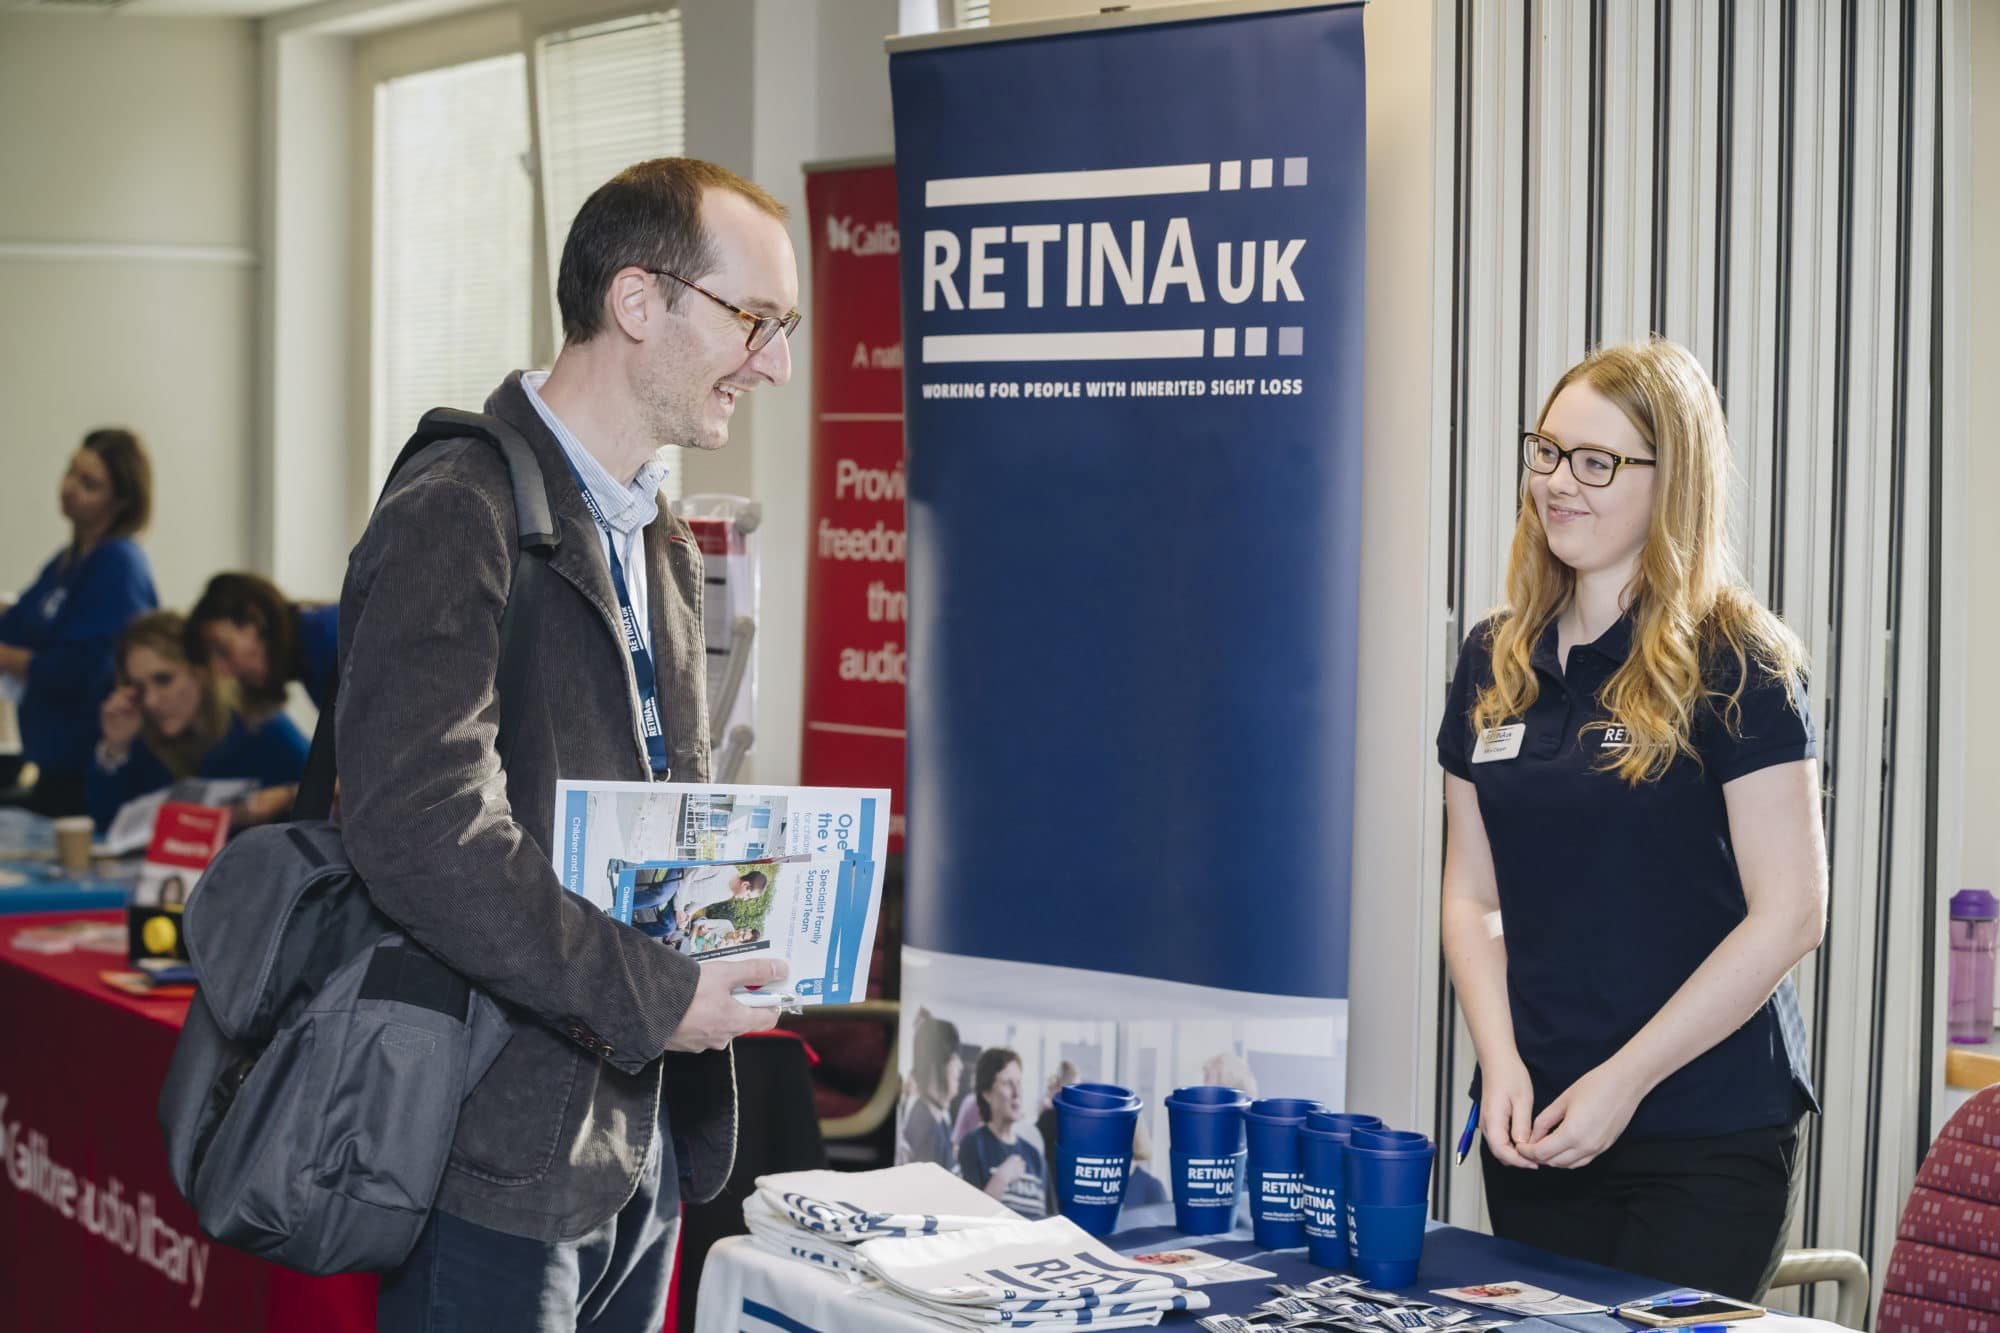 A man speaking to a Retina UK member of staff